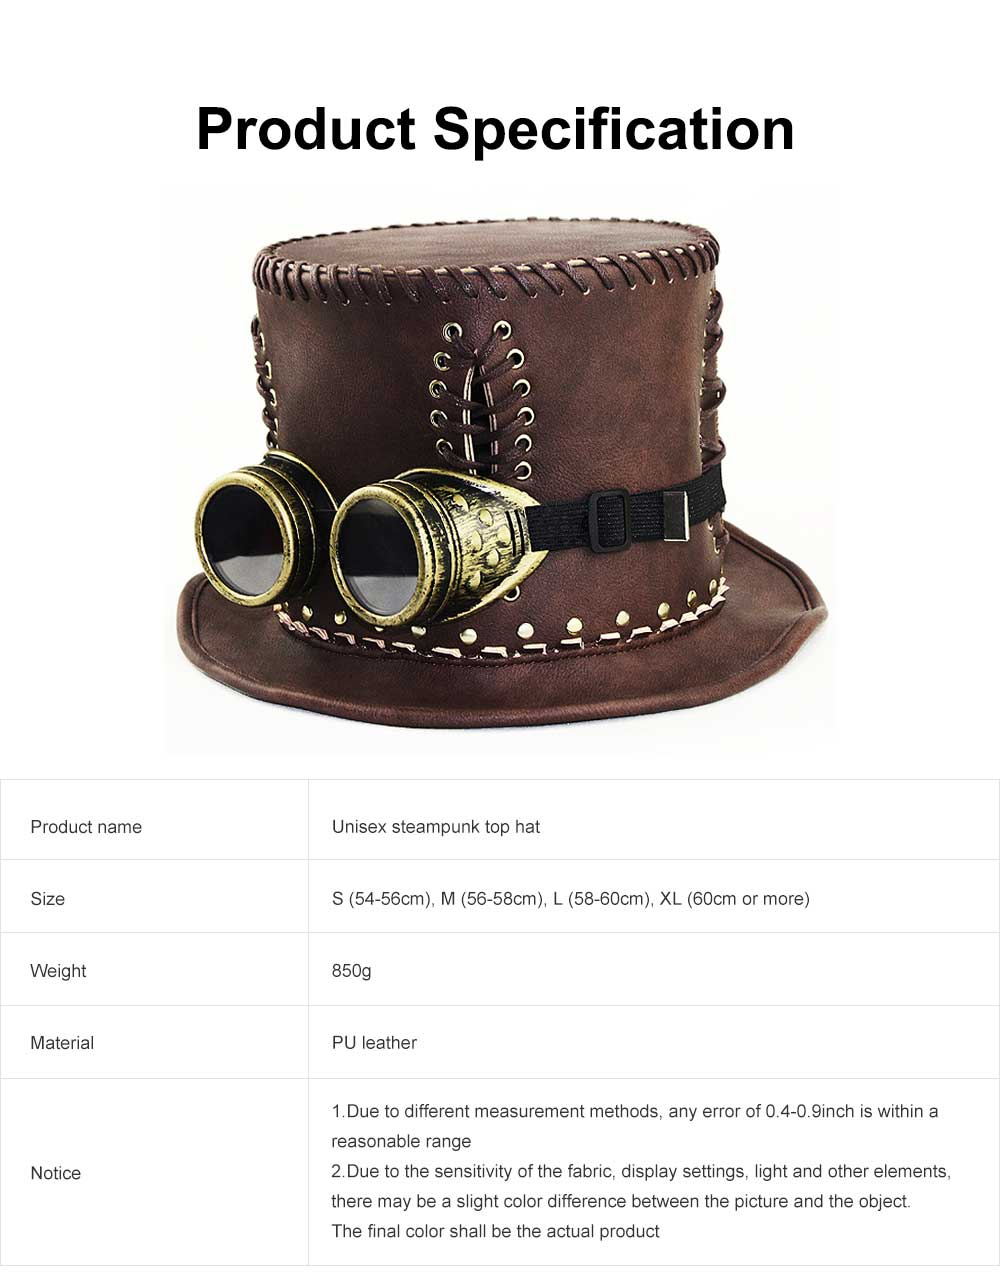 Unisex Steampunk Top Hat Retro Punk Rustic PU Leather Lace Up Punk Gentleman Hat for Costumes, Halloween Party 6